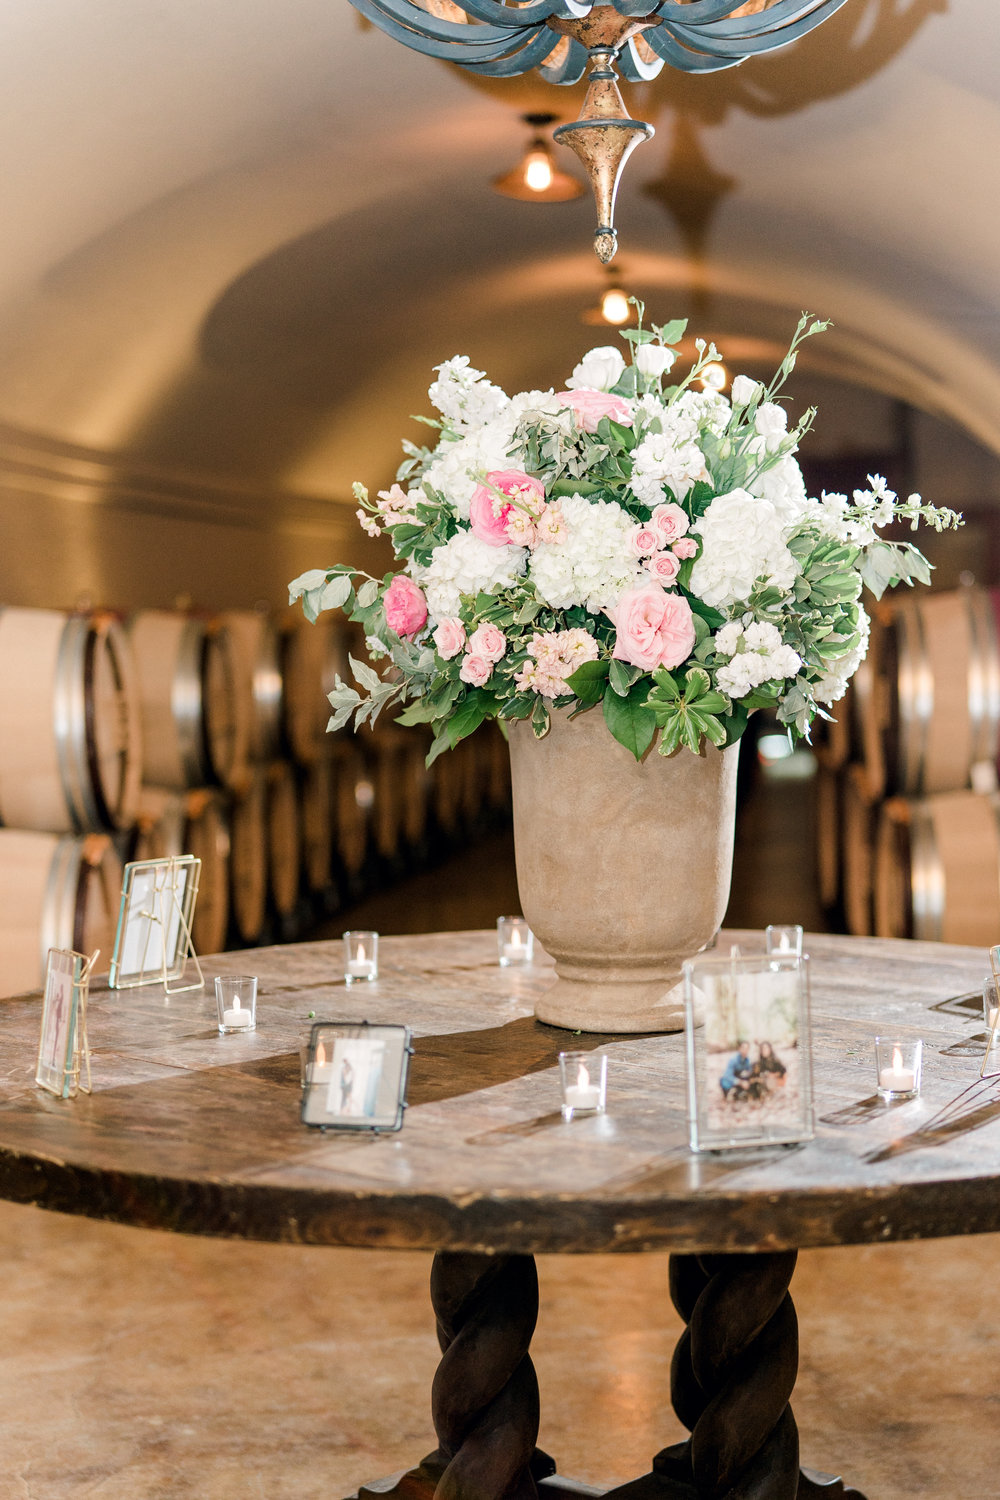 Courtney Inghram Stone Tower Winery Leesburg Virginia Wedding Florist